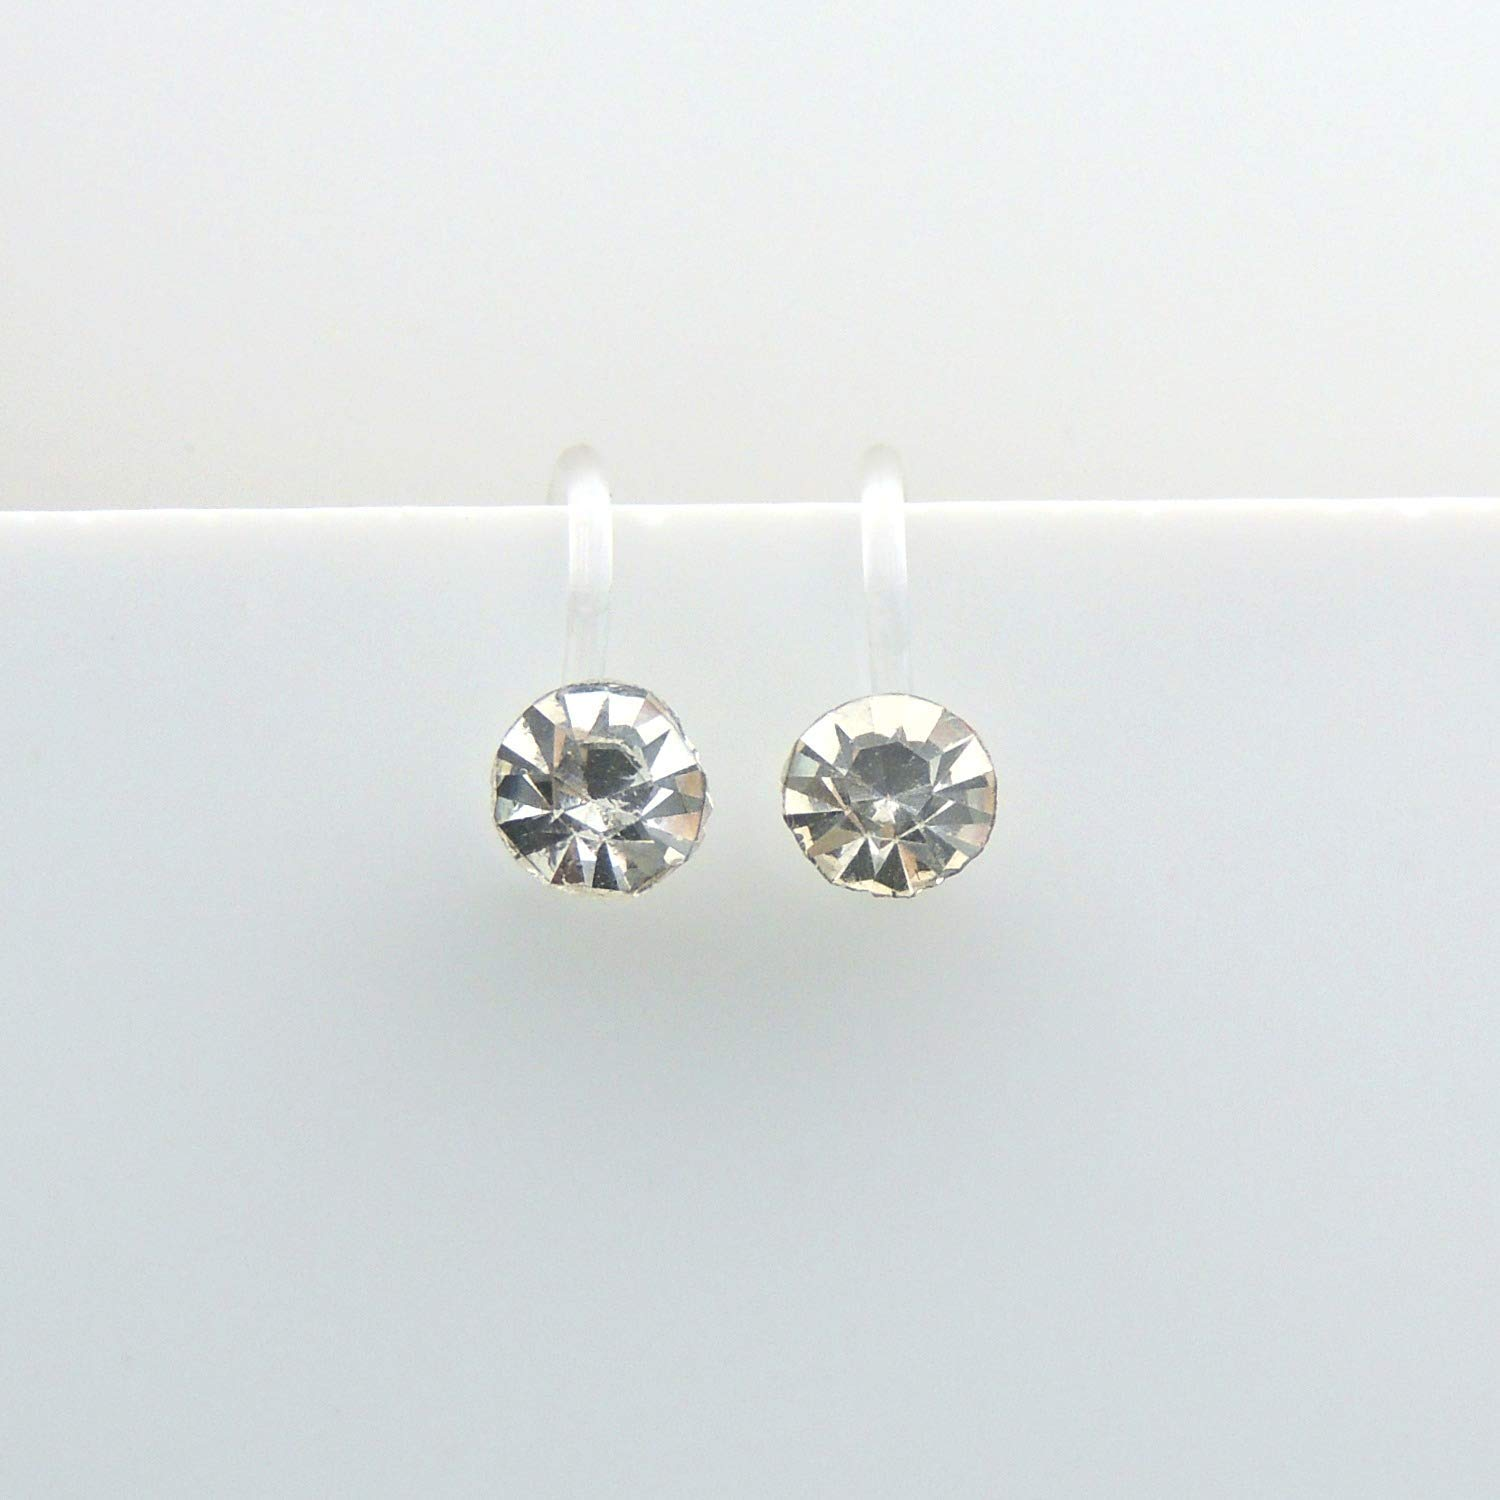 4mm Clear Glass Rhinestone Invisible Clip On Earrings for Non-Pierced Ears